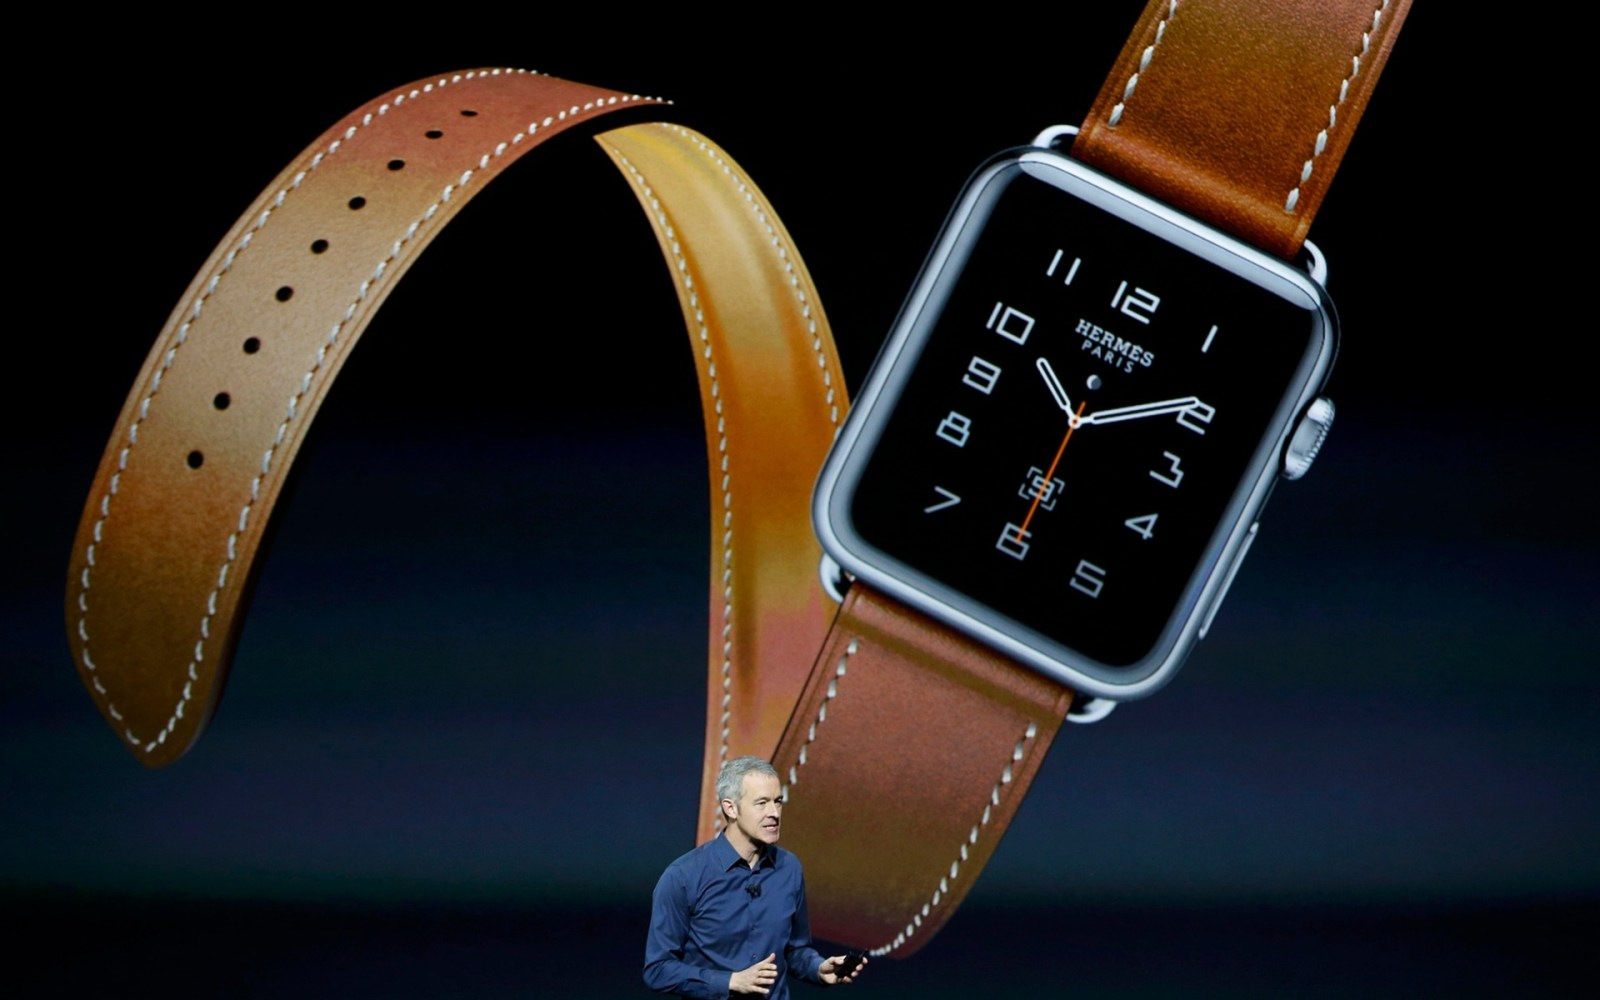 Apple to update Apple Watch in mid-March with new bands, OS + full redesign in fall